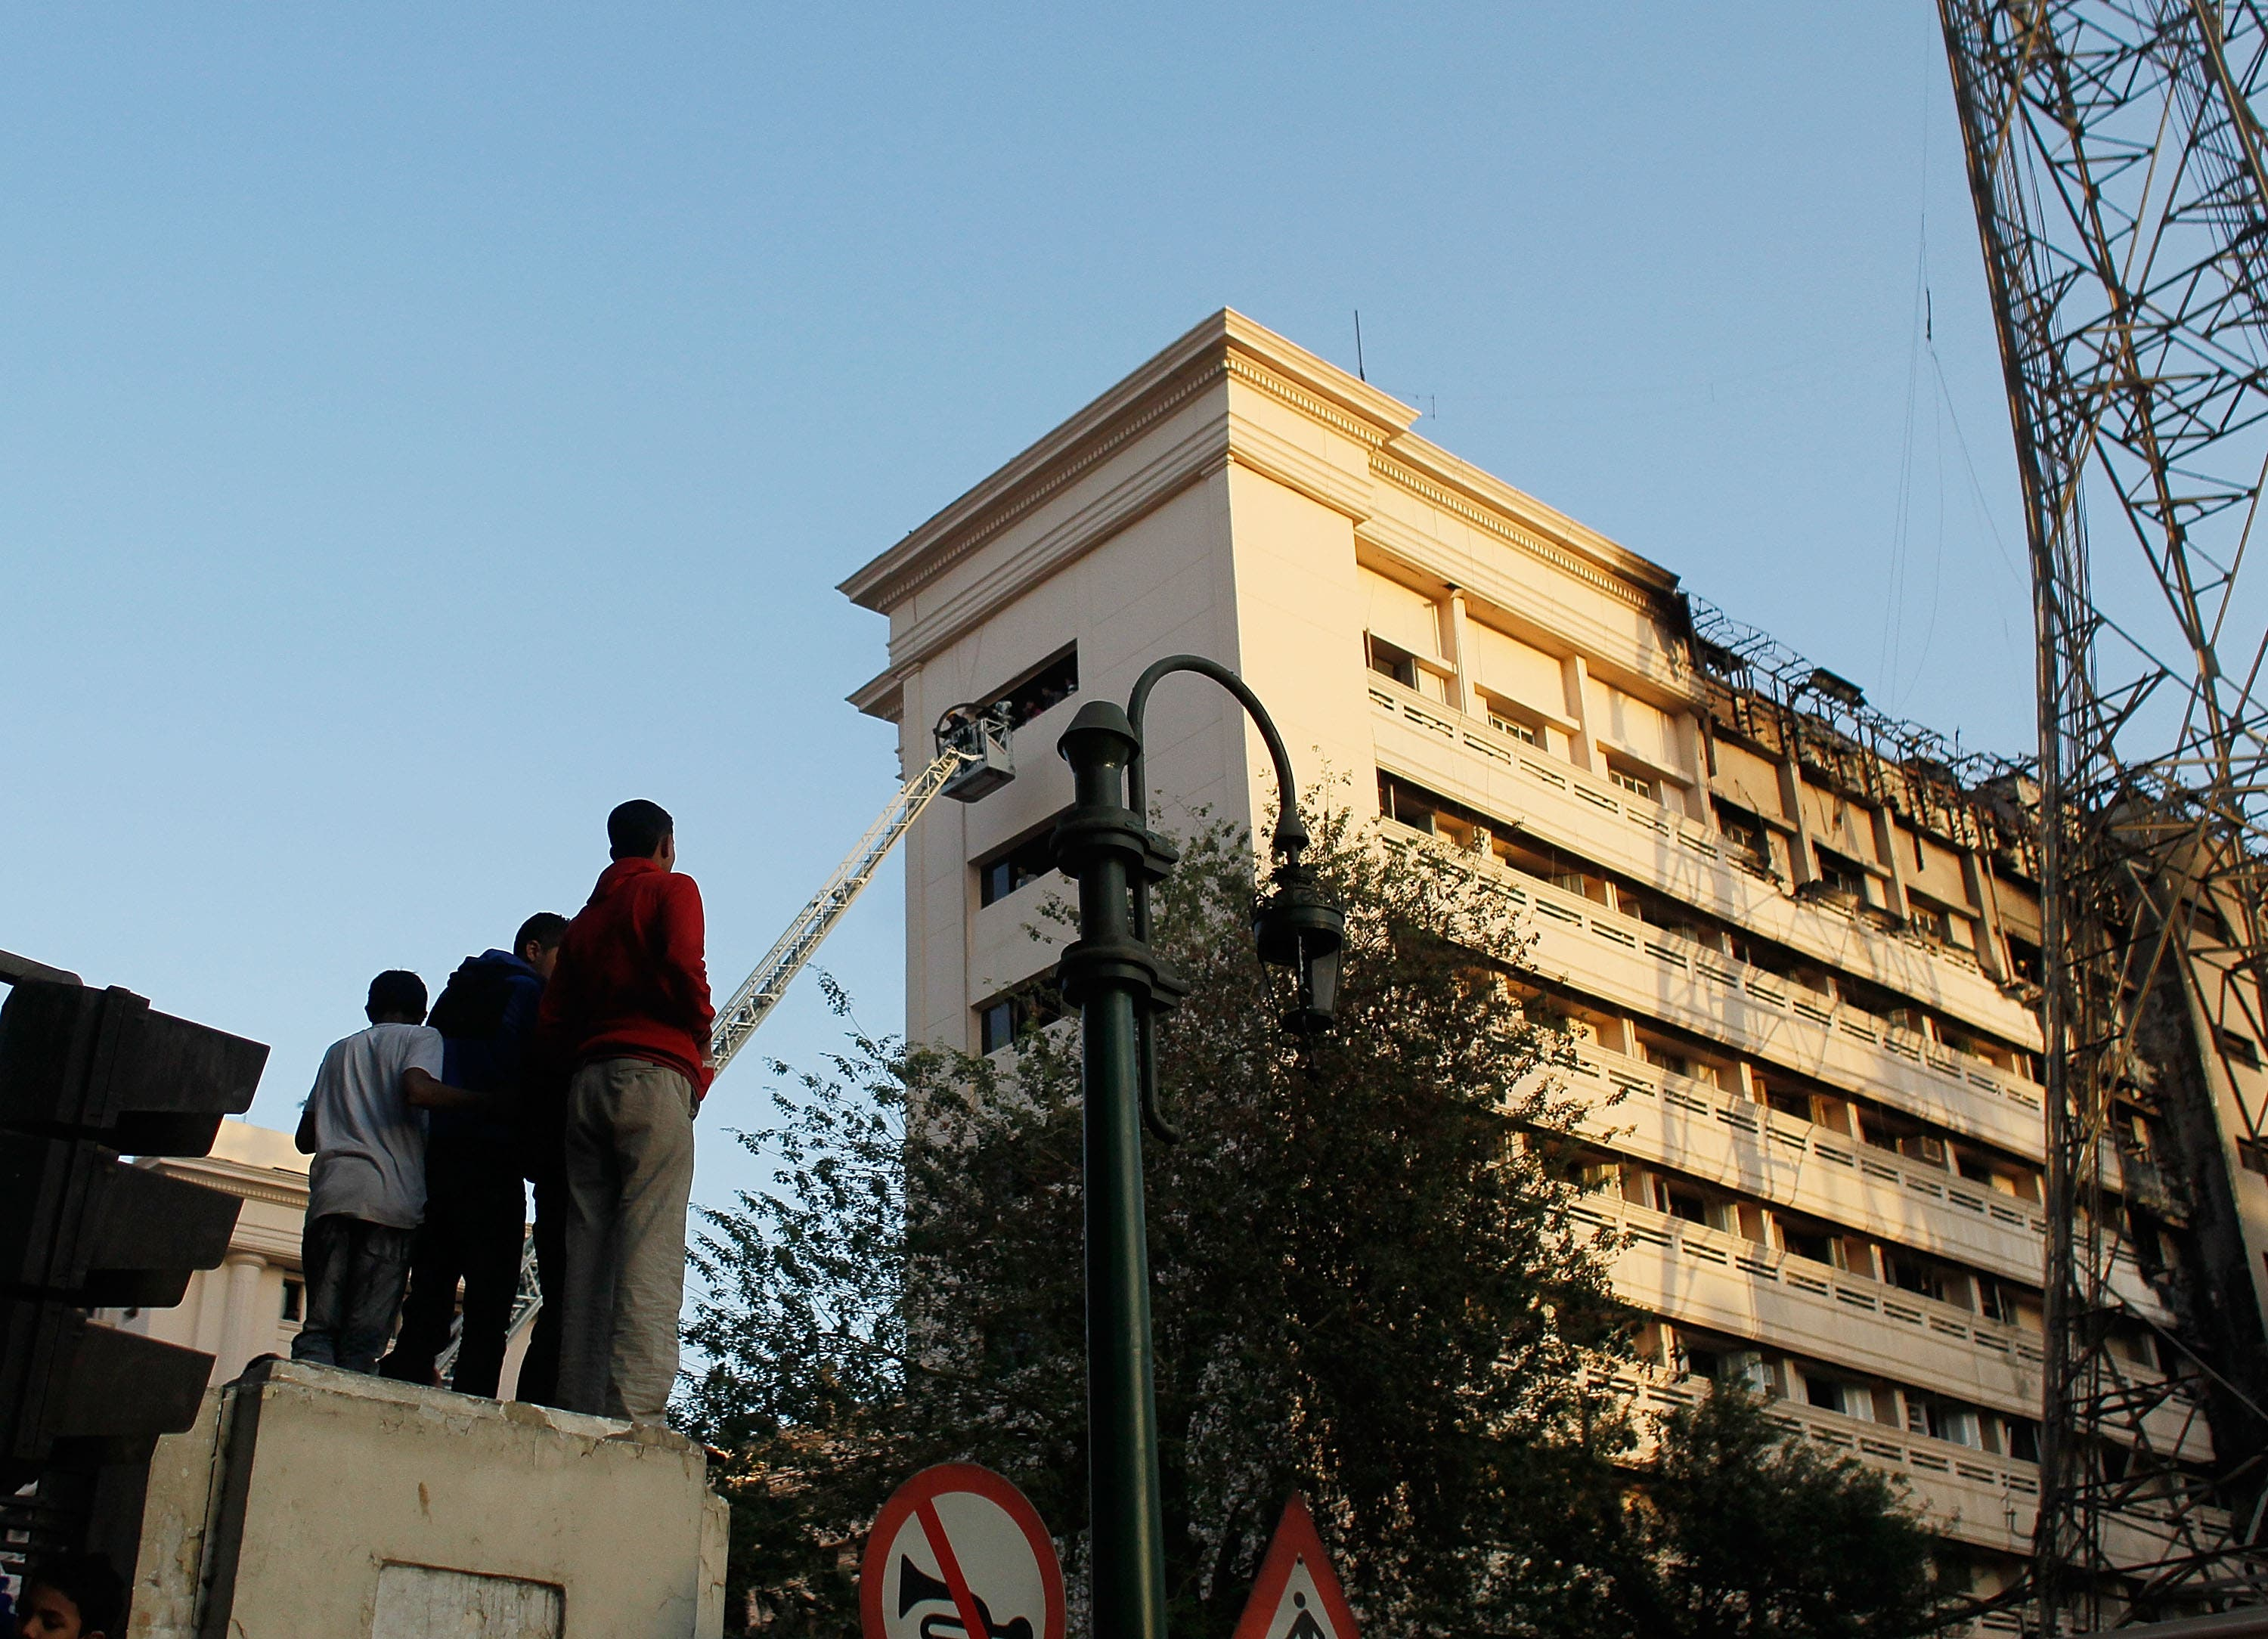 The Egyptian Ministry of Interior has long been the focus of protesters' demands.